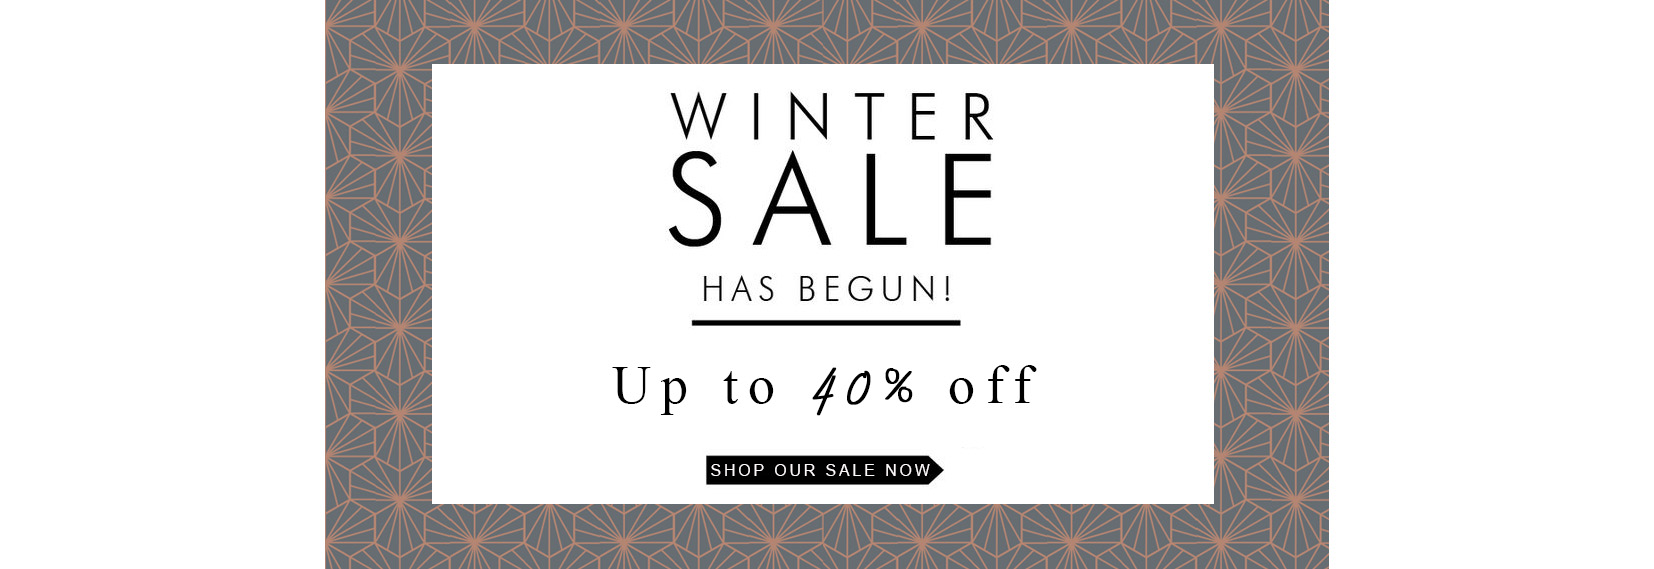 Winter Sale Has Begun!